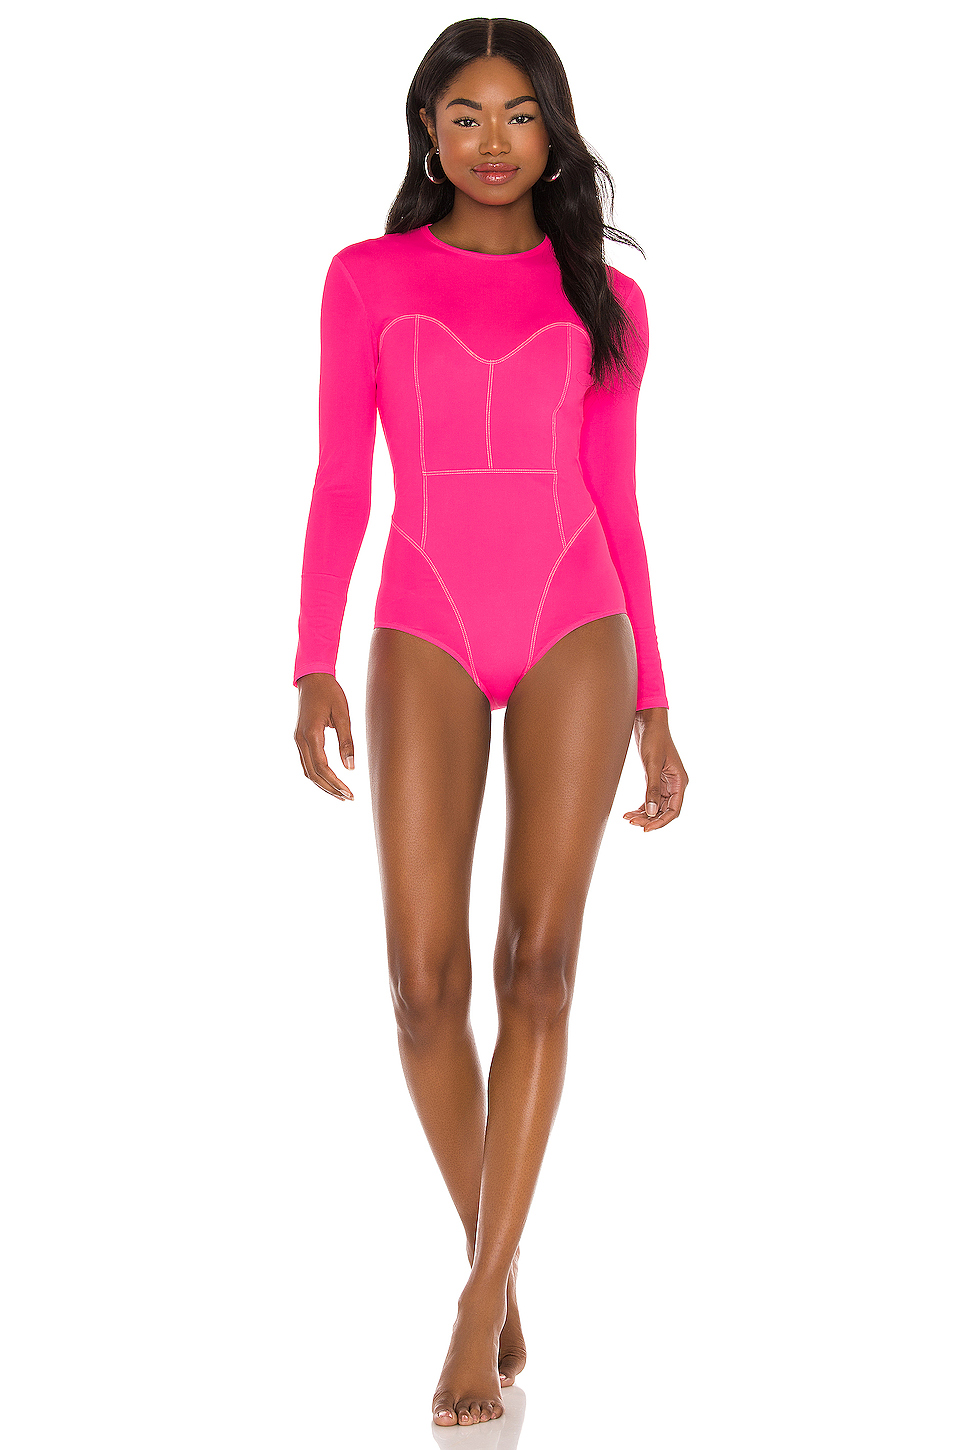 One-piece swimsuit in pink with long sleeves that covers the rear pimples and shoulders